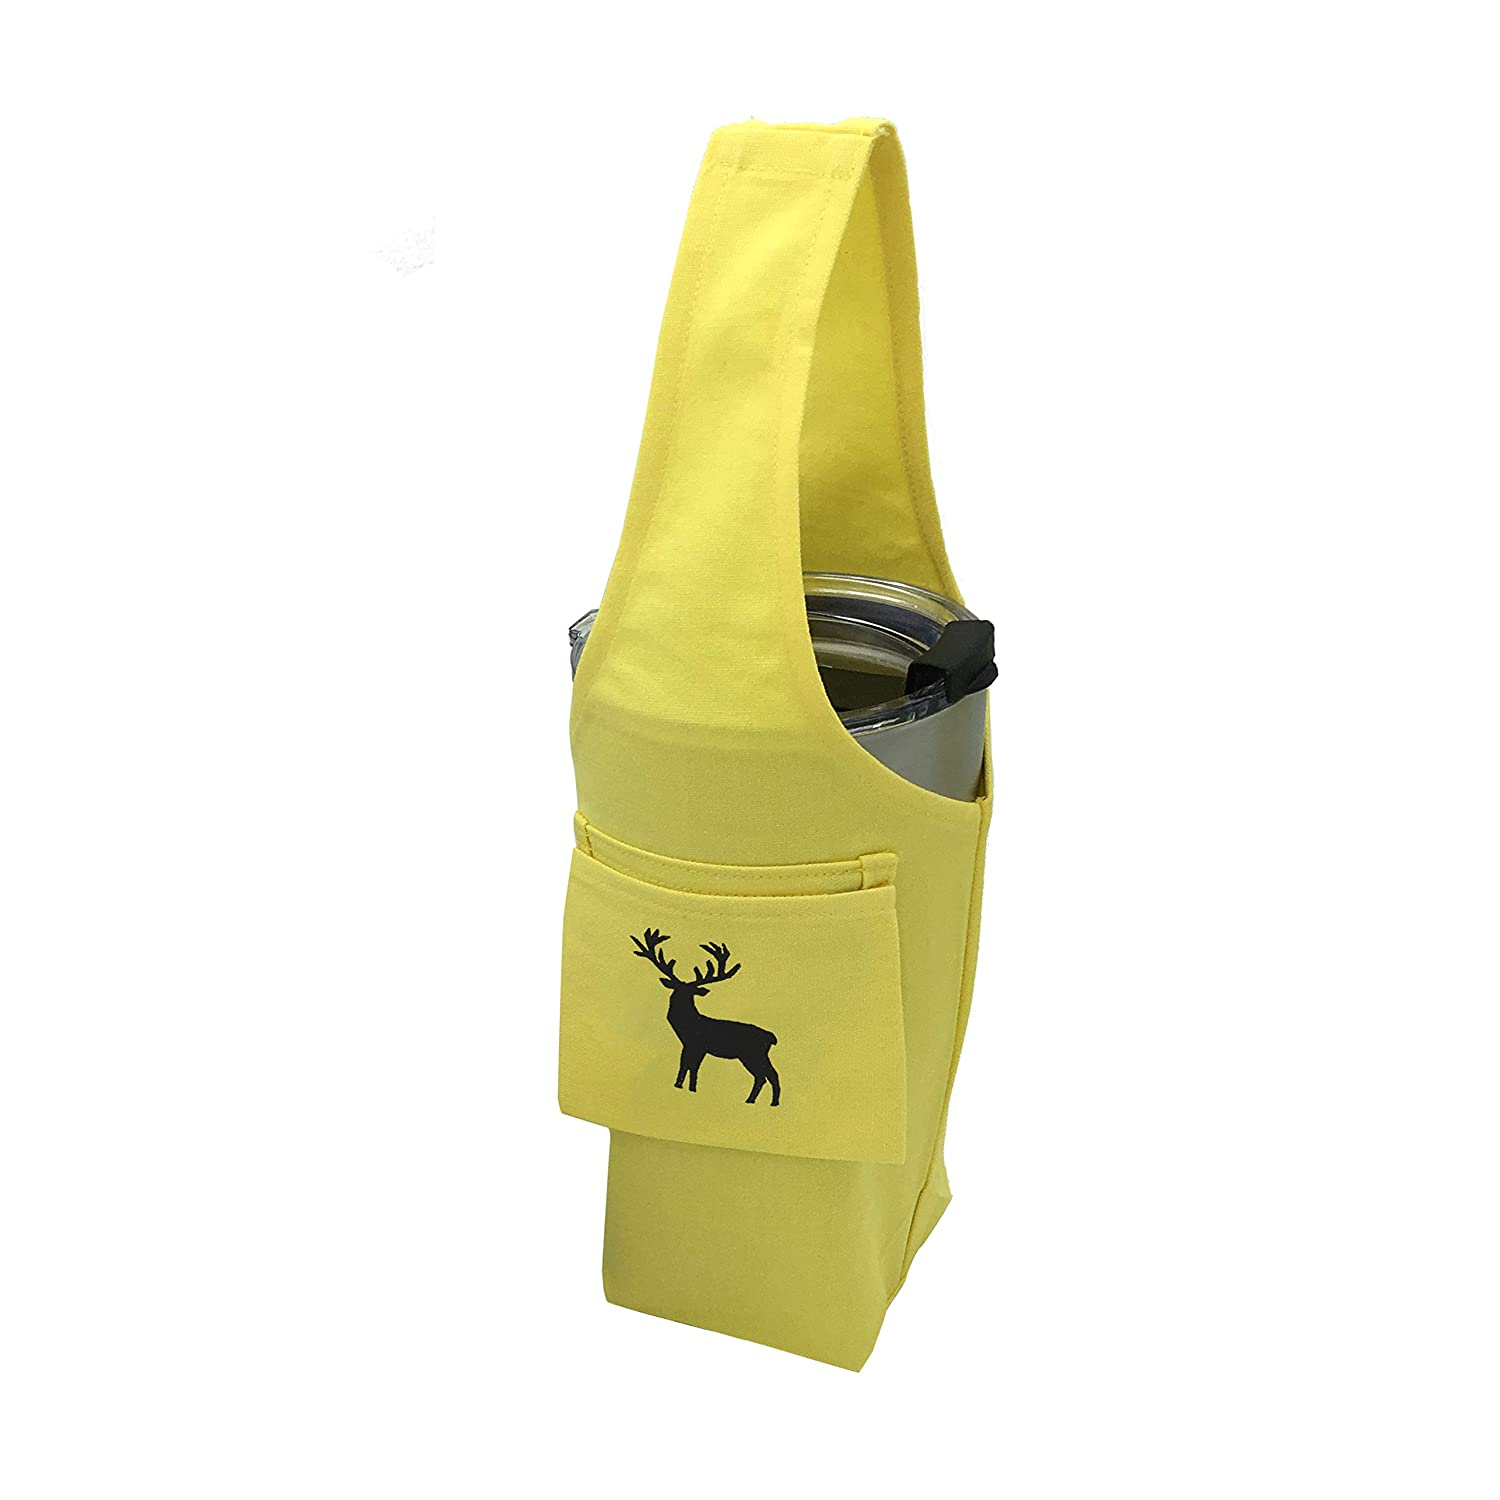 Deer YCCT Reusable Travel Coffee and Drink Bag